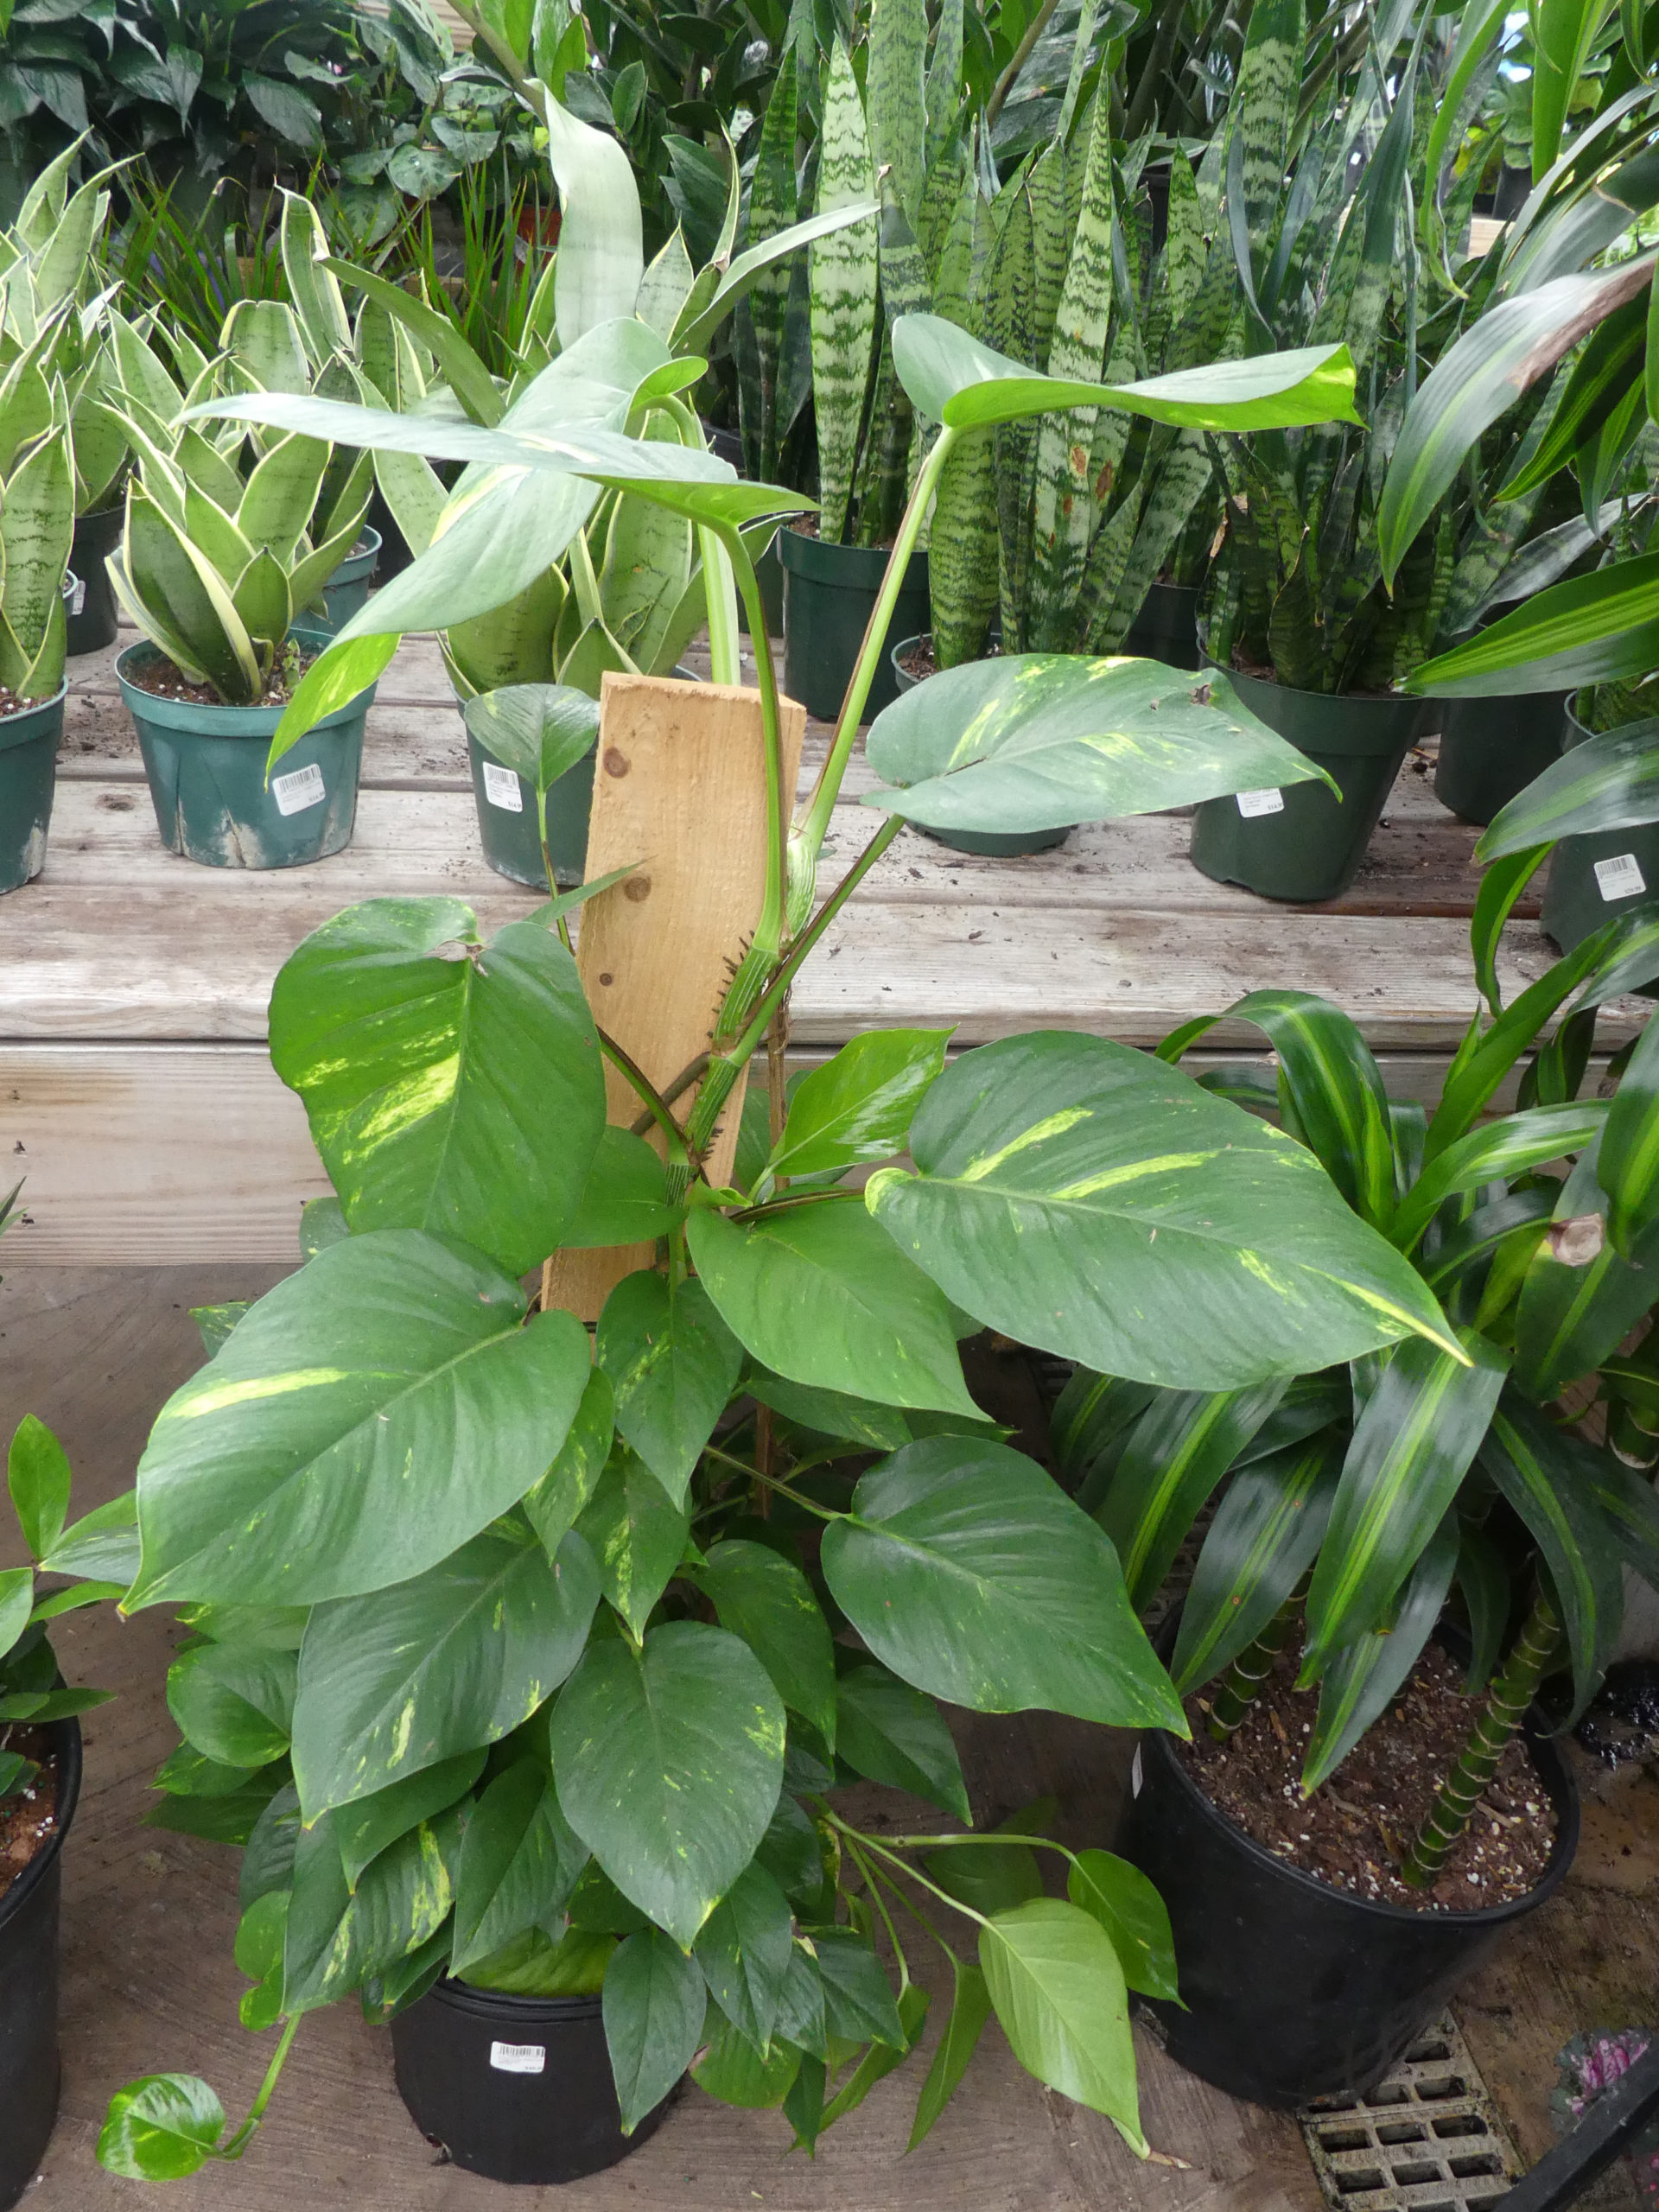 The golden pothos is a philodendron-like vine that grows in a basket or on a pole or bark post.  As houseplants the foliage rarely gets larger than 4 or 5 inches wide but in the wild the leaves can be several feet across. There is also a split-leaf variety. Good for low to medium light. ANDREW MESSINGER